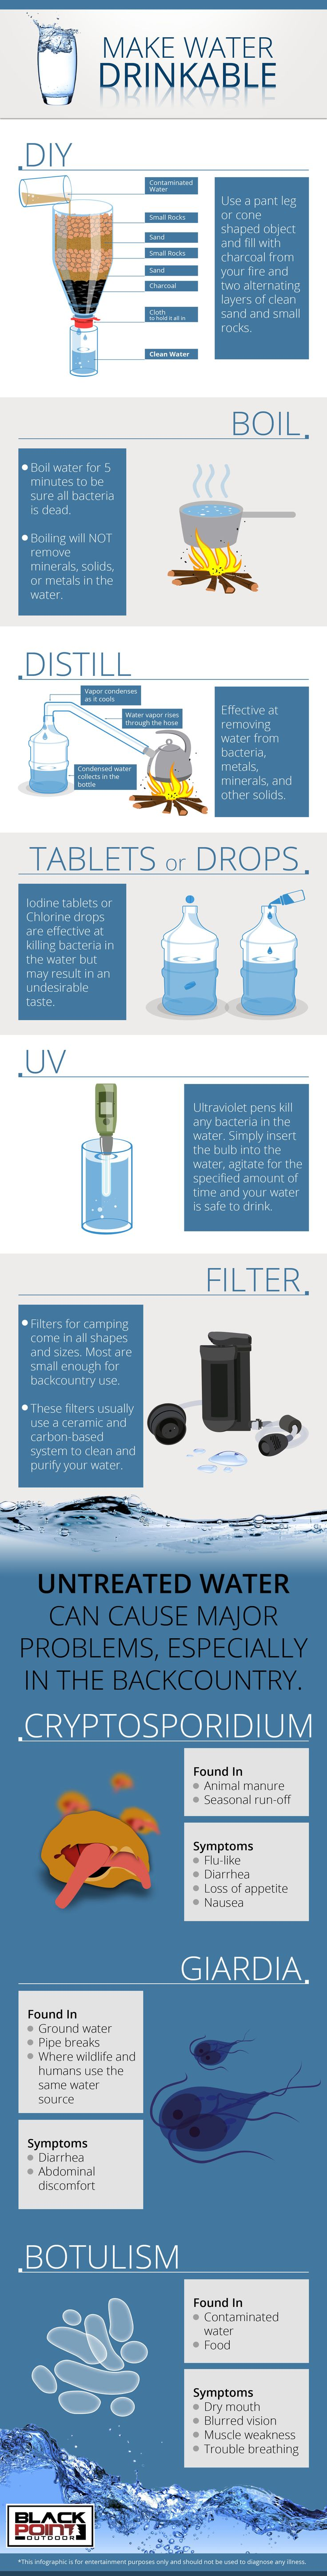 HOW TO PURIFY WATER Image Credit: http://www.blackpointoutdoor.com